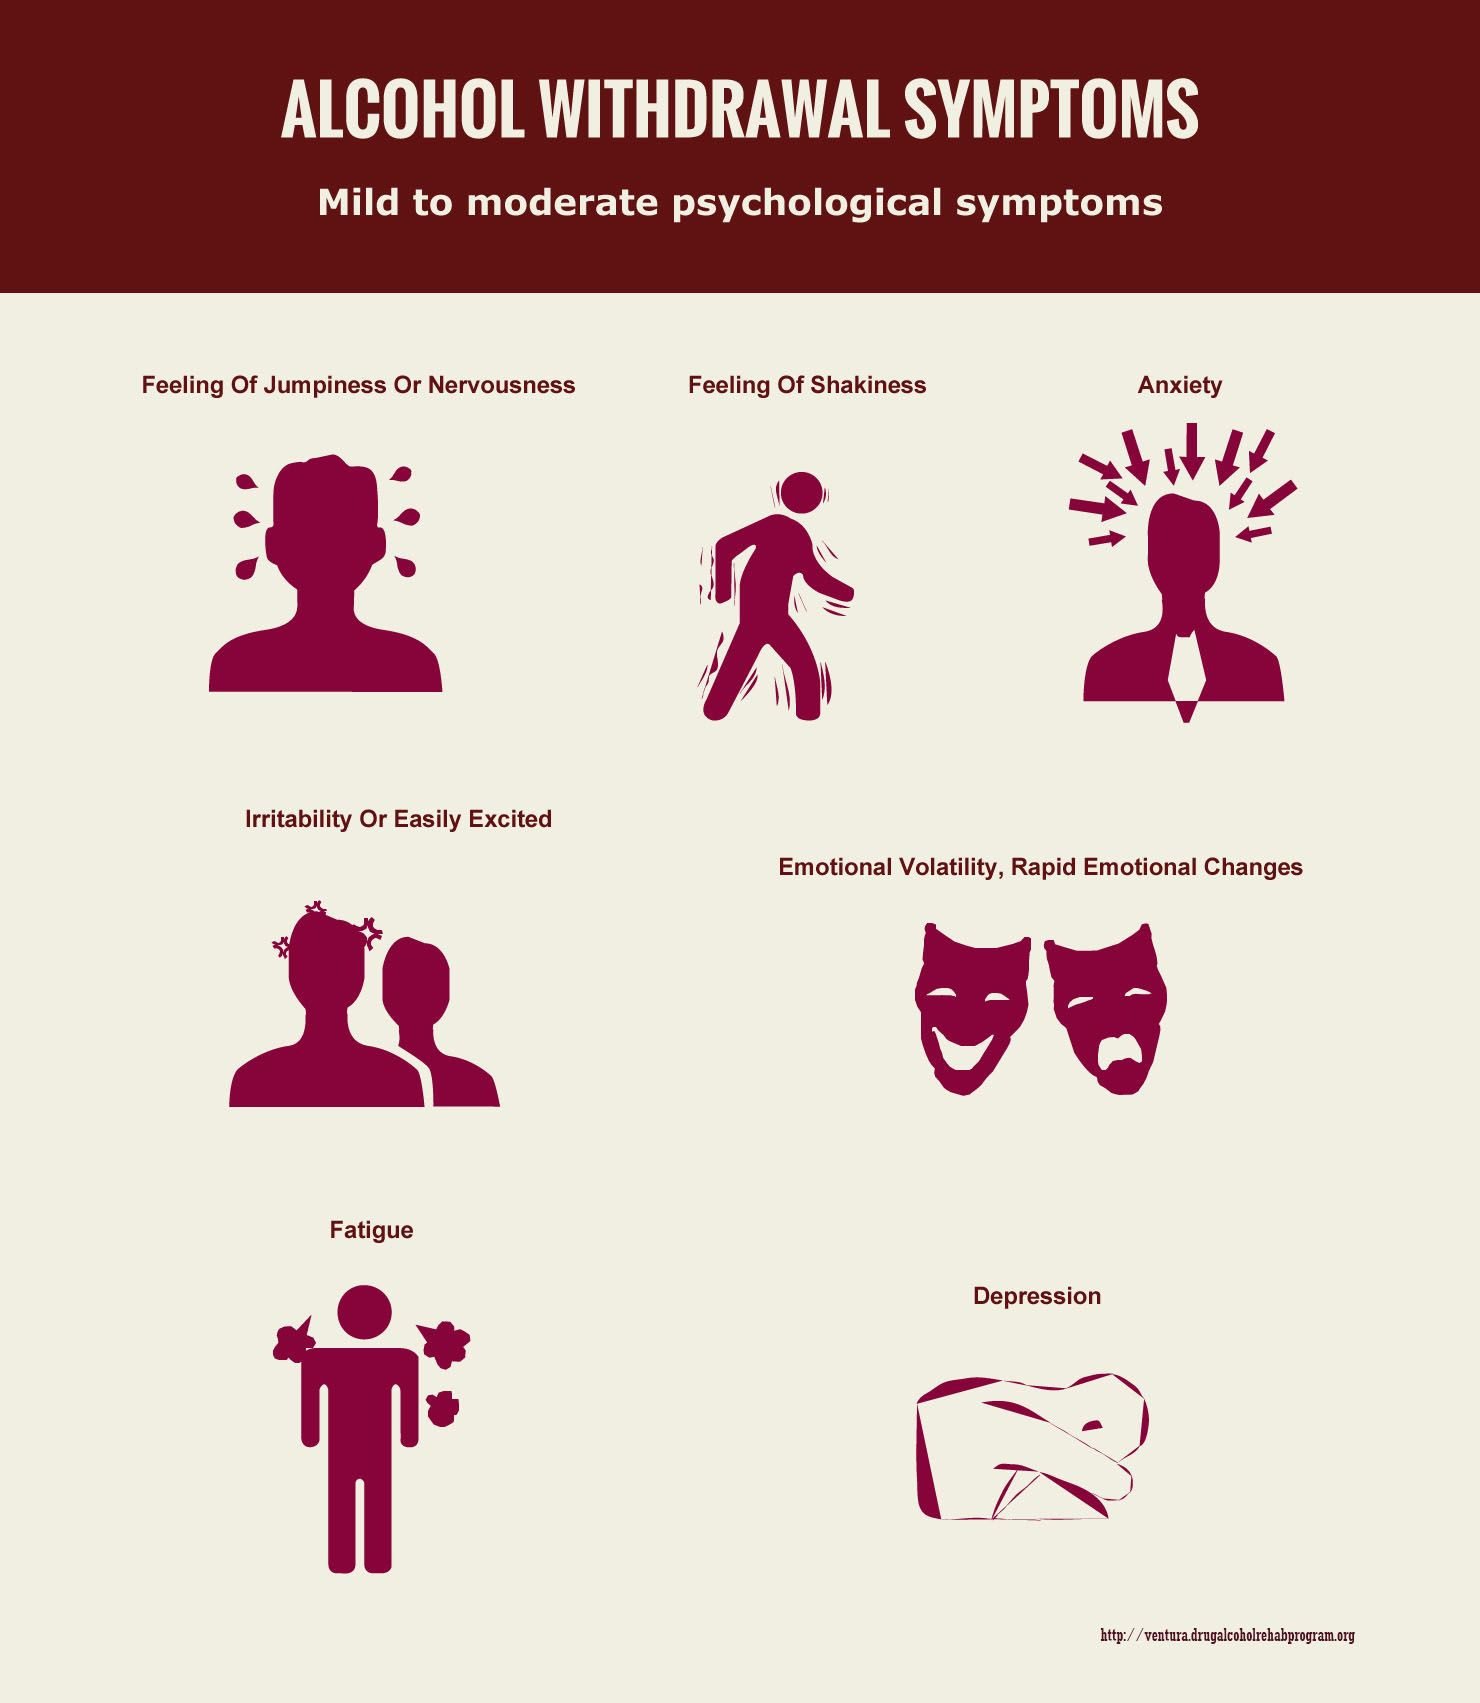 alcohol withdrawal symptons infographic | health & lifestyle, Skeleton